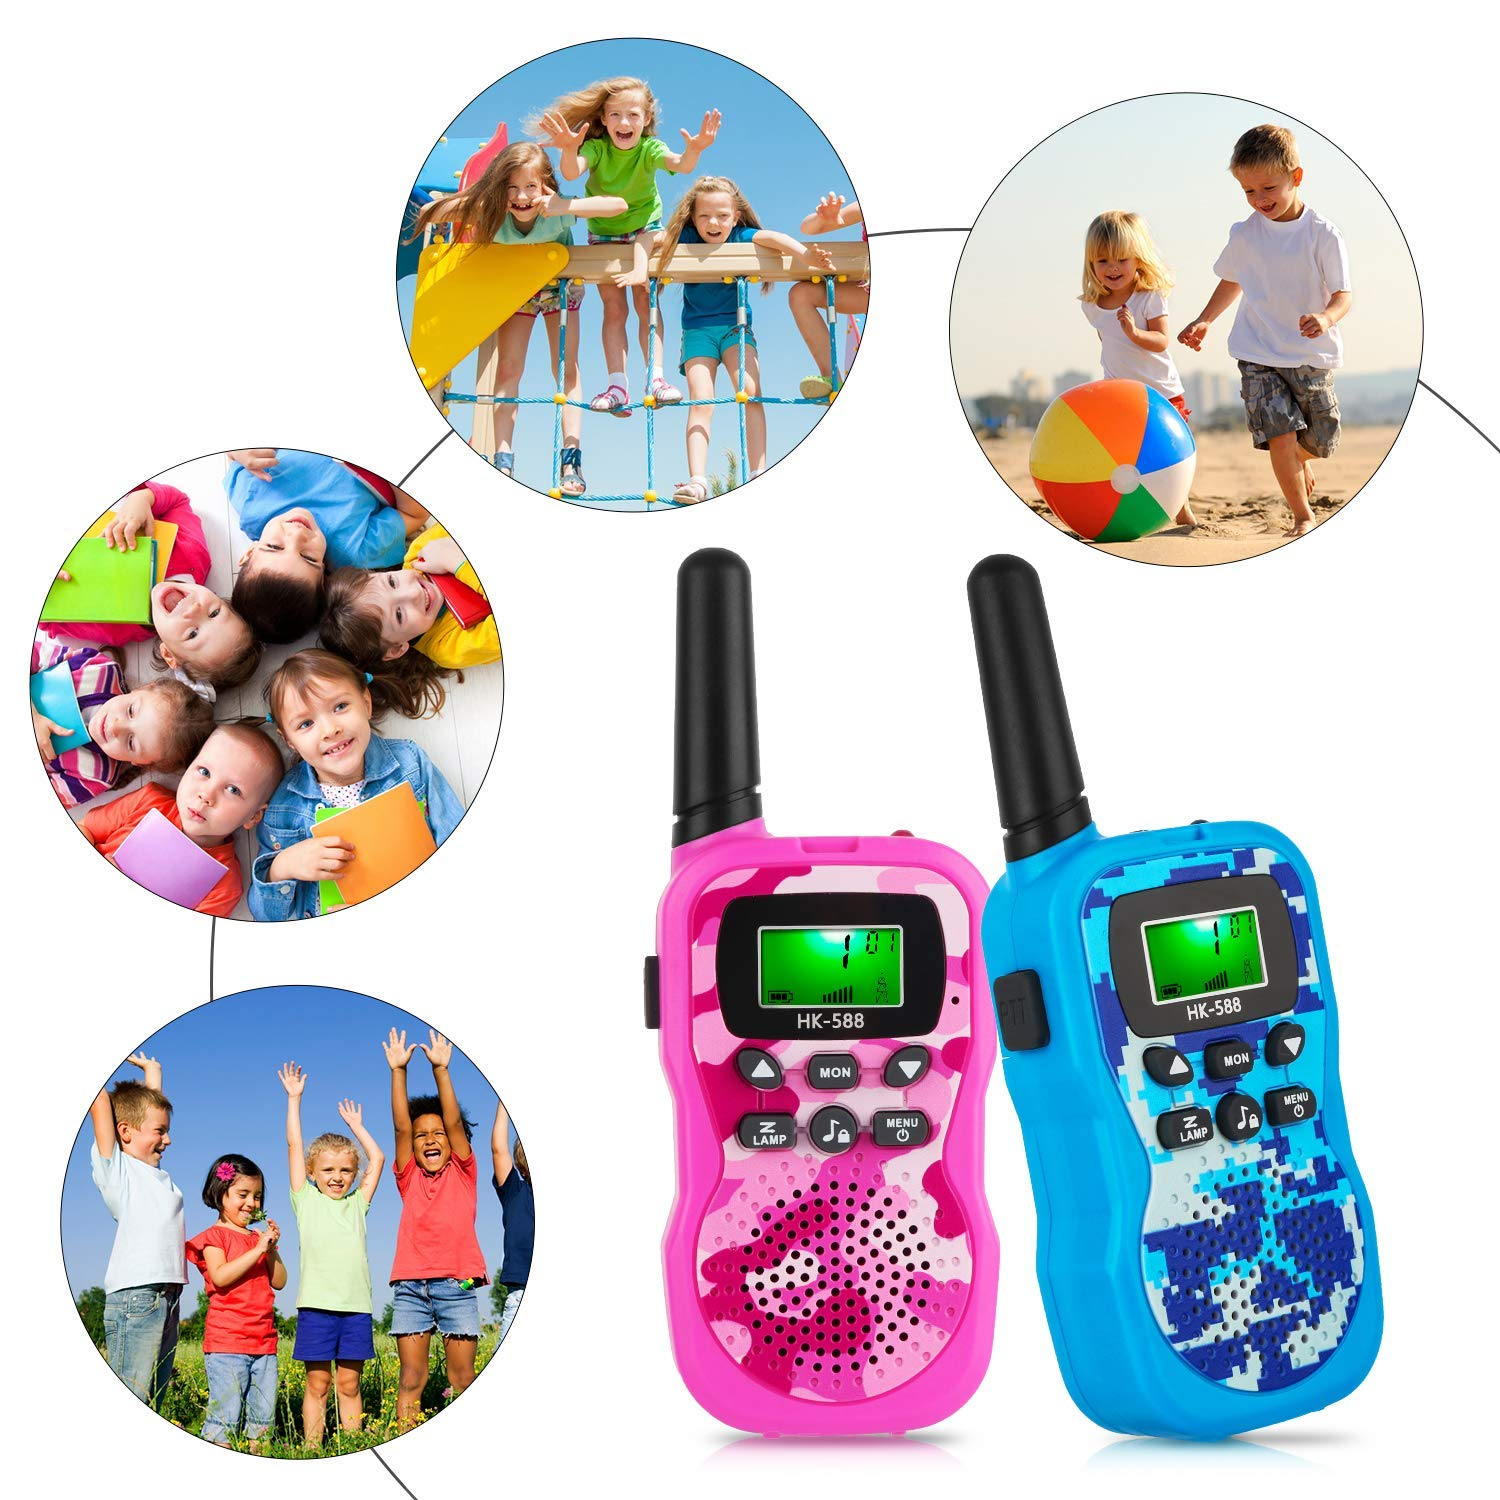 Walkie Talkies for Kids, Handheld Woki Toki Toys for Boys and Girls with Flashlight, License Free Kids Survival Gear for Hunting and Outdoor Adventure by VERDUO (Image #3)